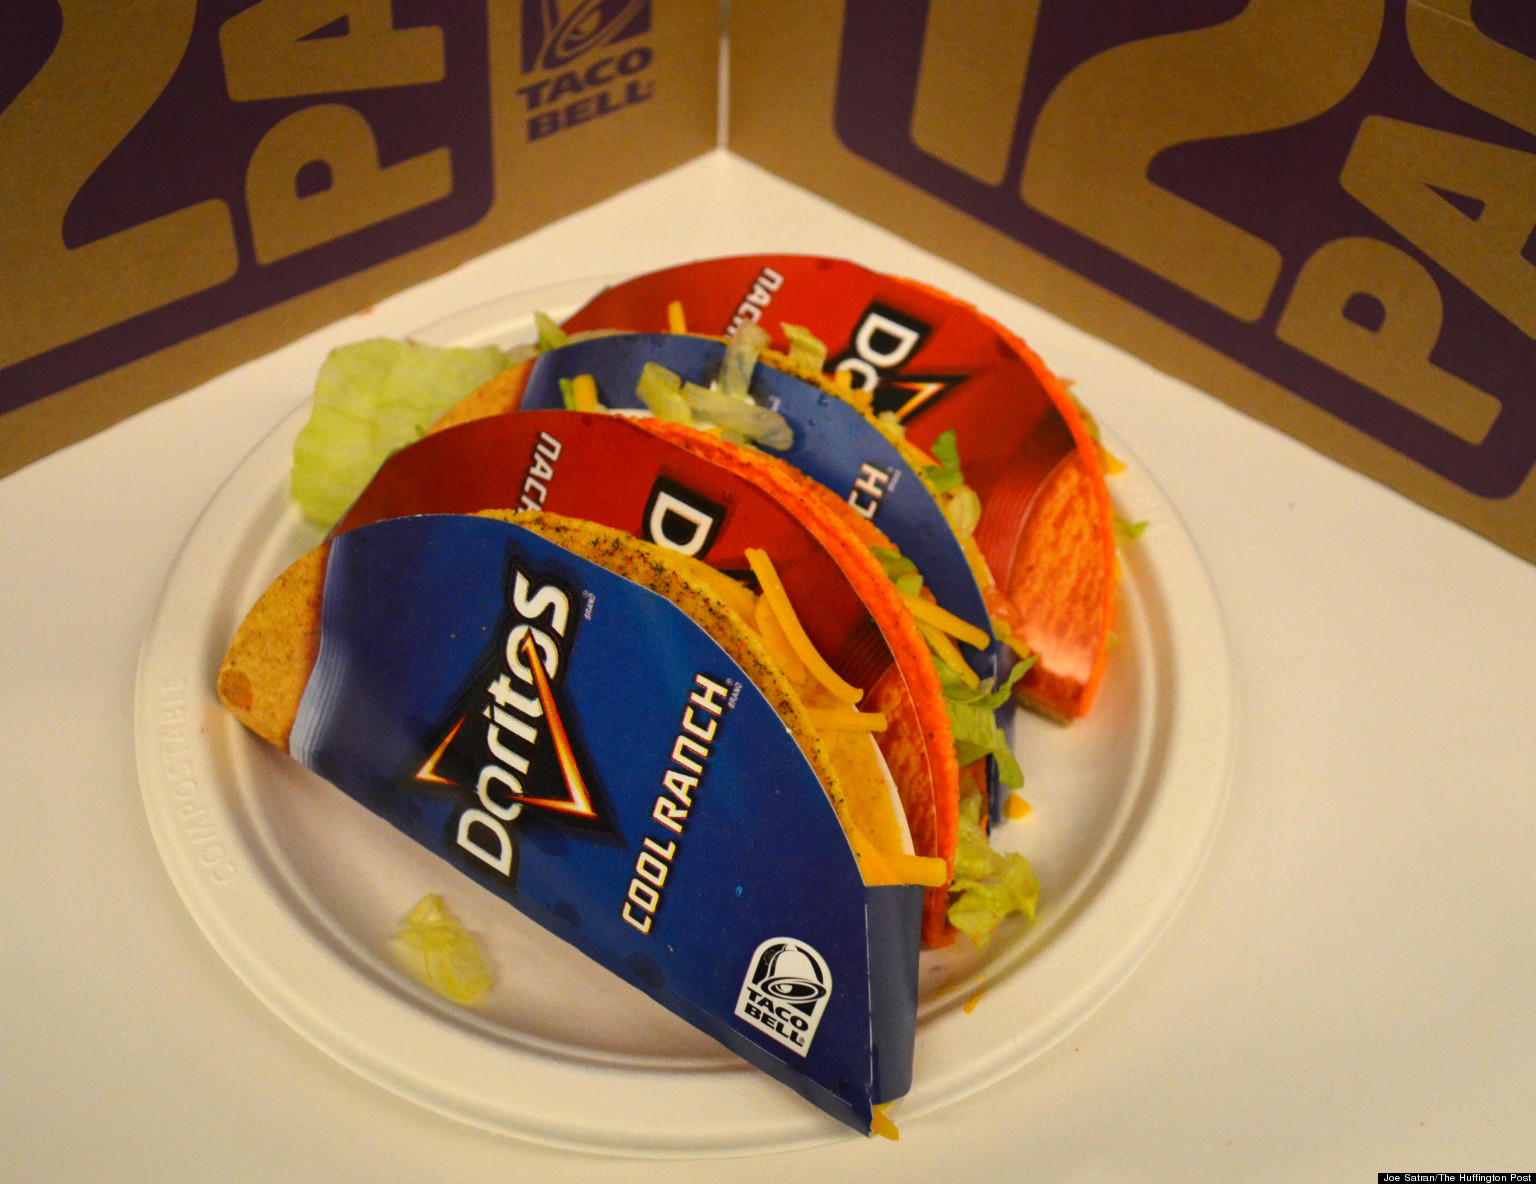 Inmate Sues Taco Bell, Says Idea For Doritos Locos Tacos Was His